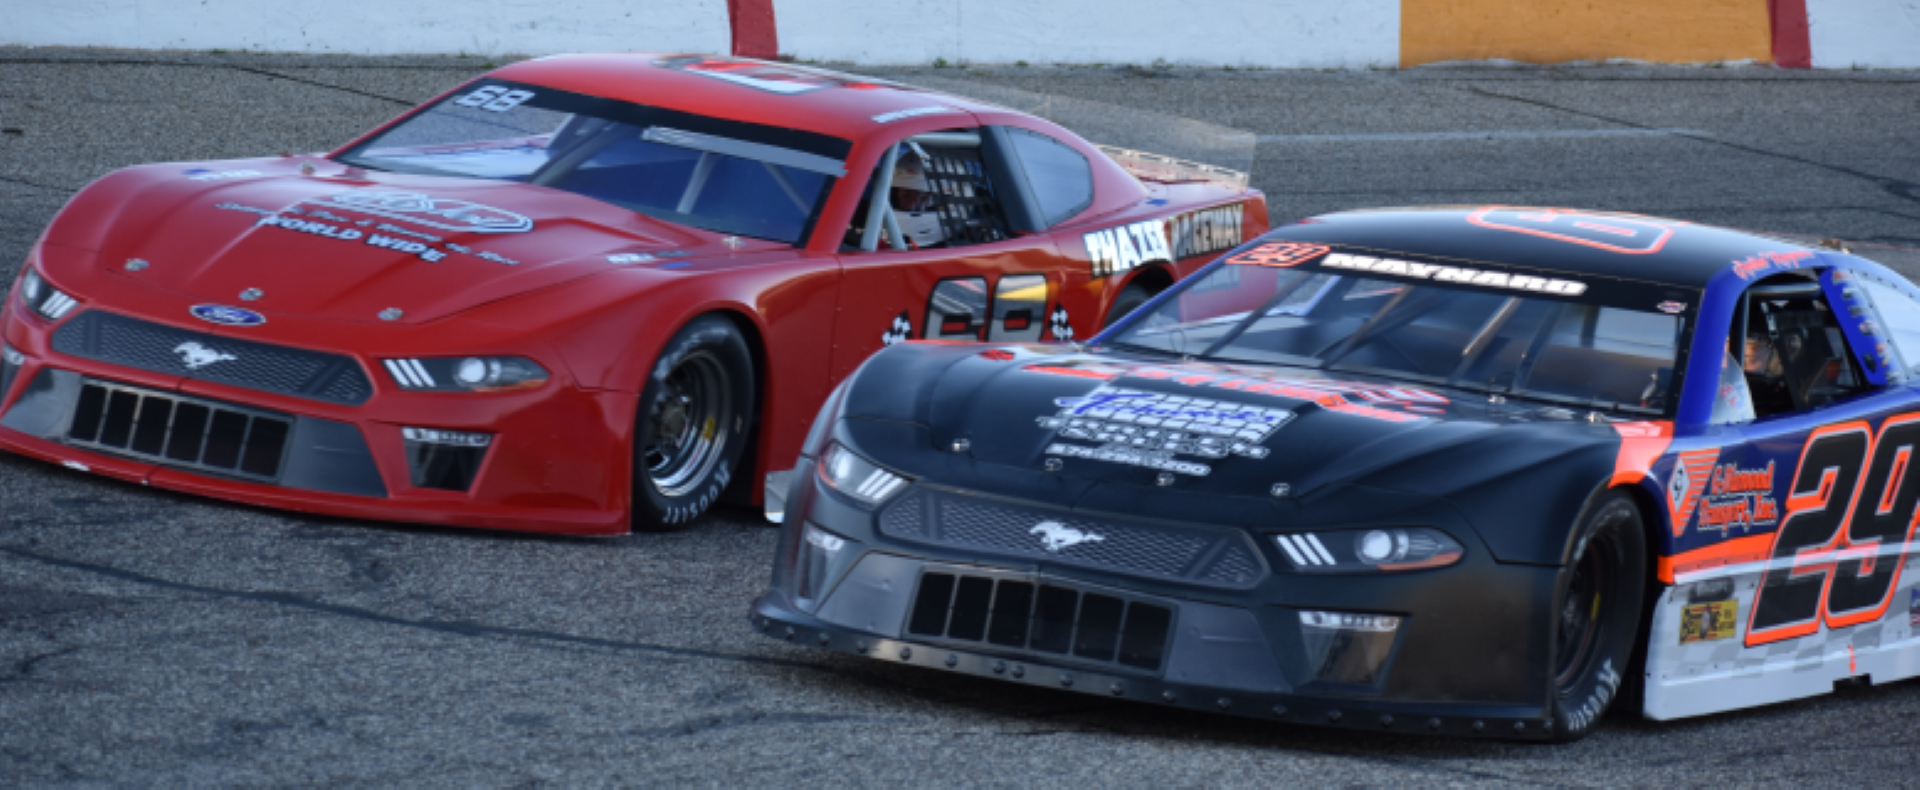 WEEKLY RACING - OSLM, TLM, FWD AND ZOO Stock Race